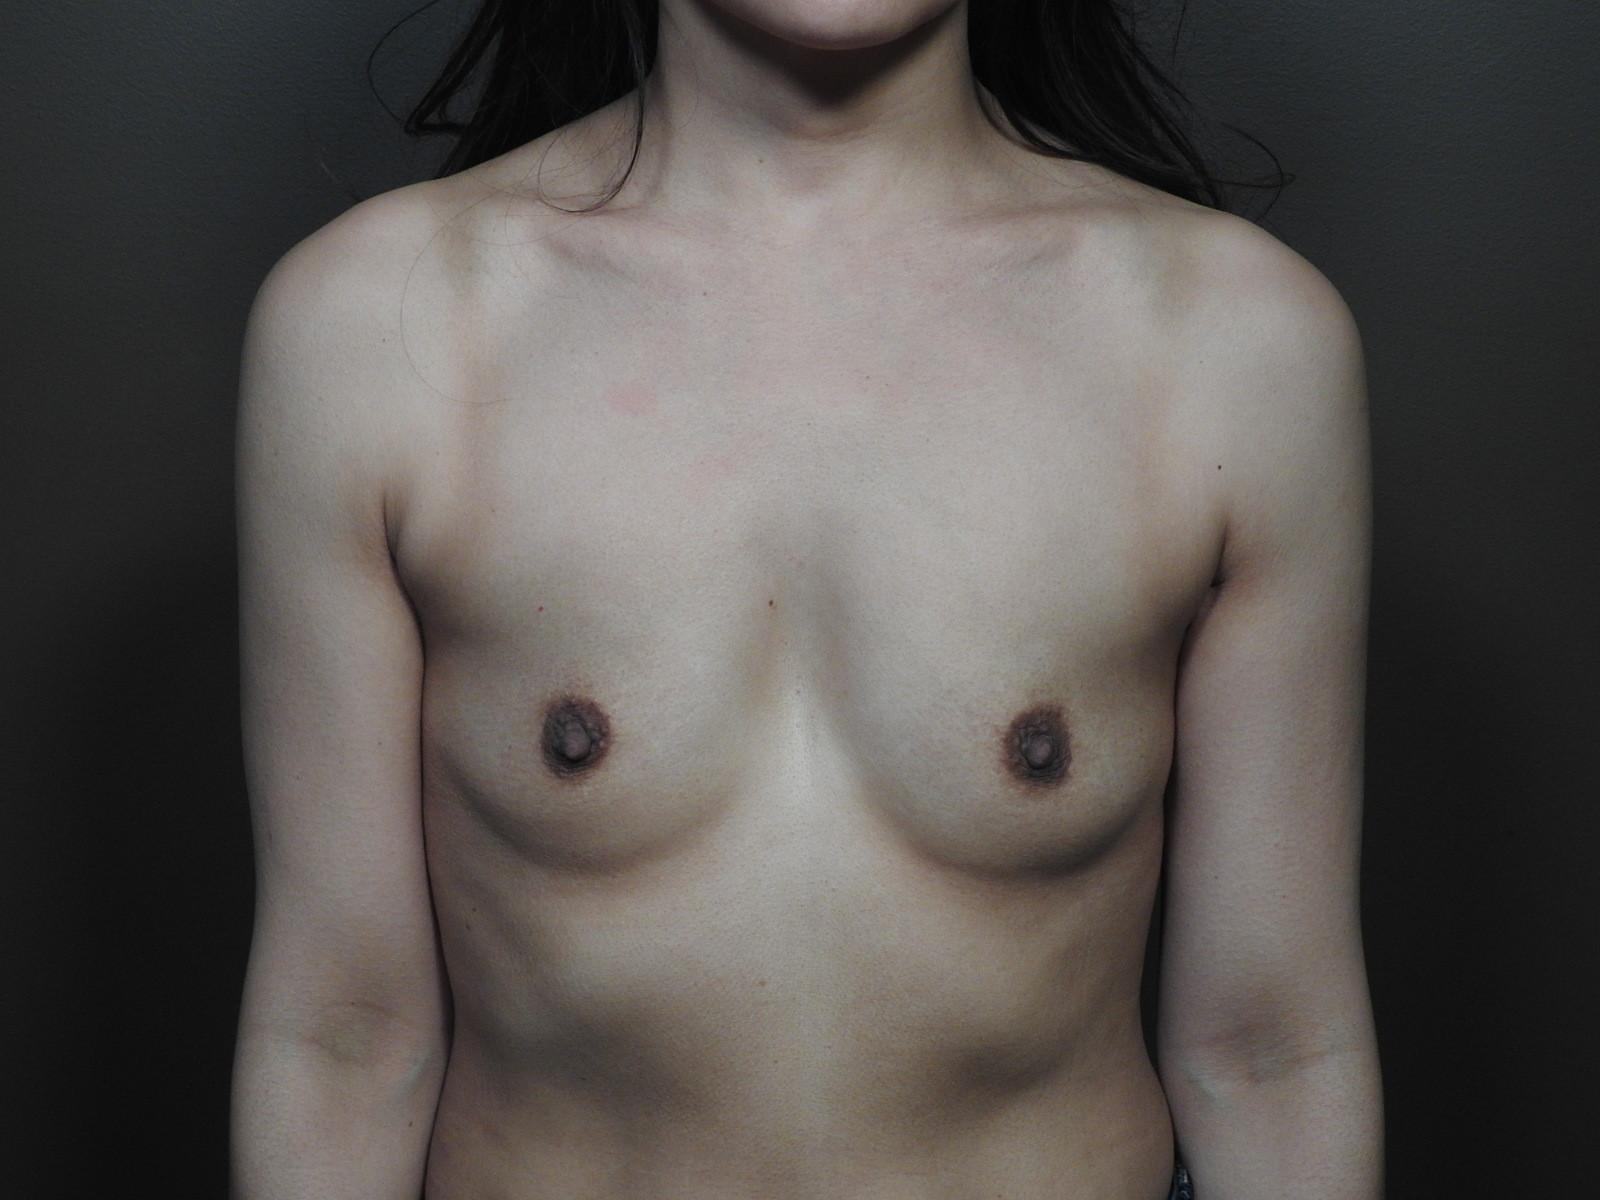 breast augmentation before surgery